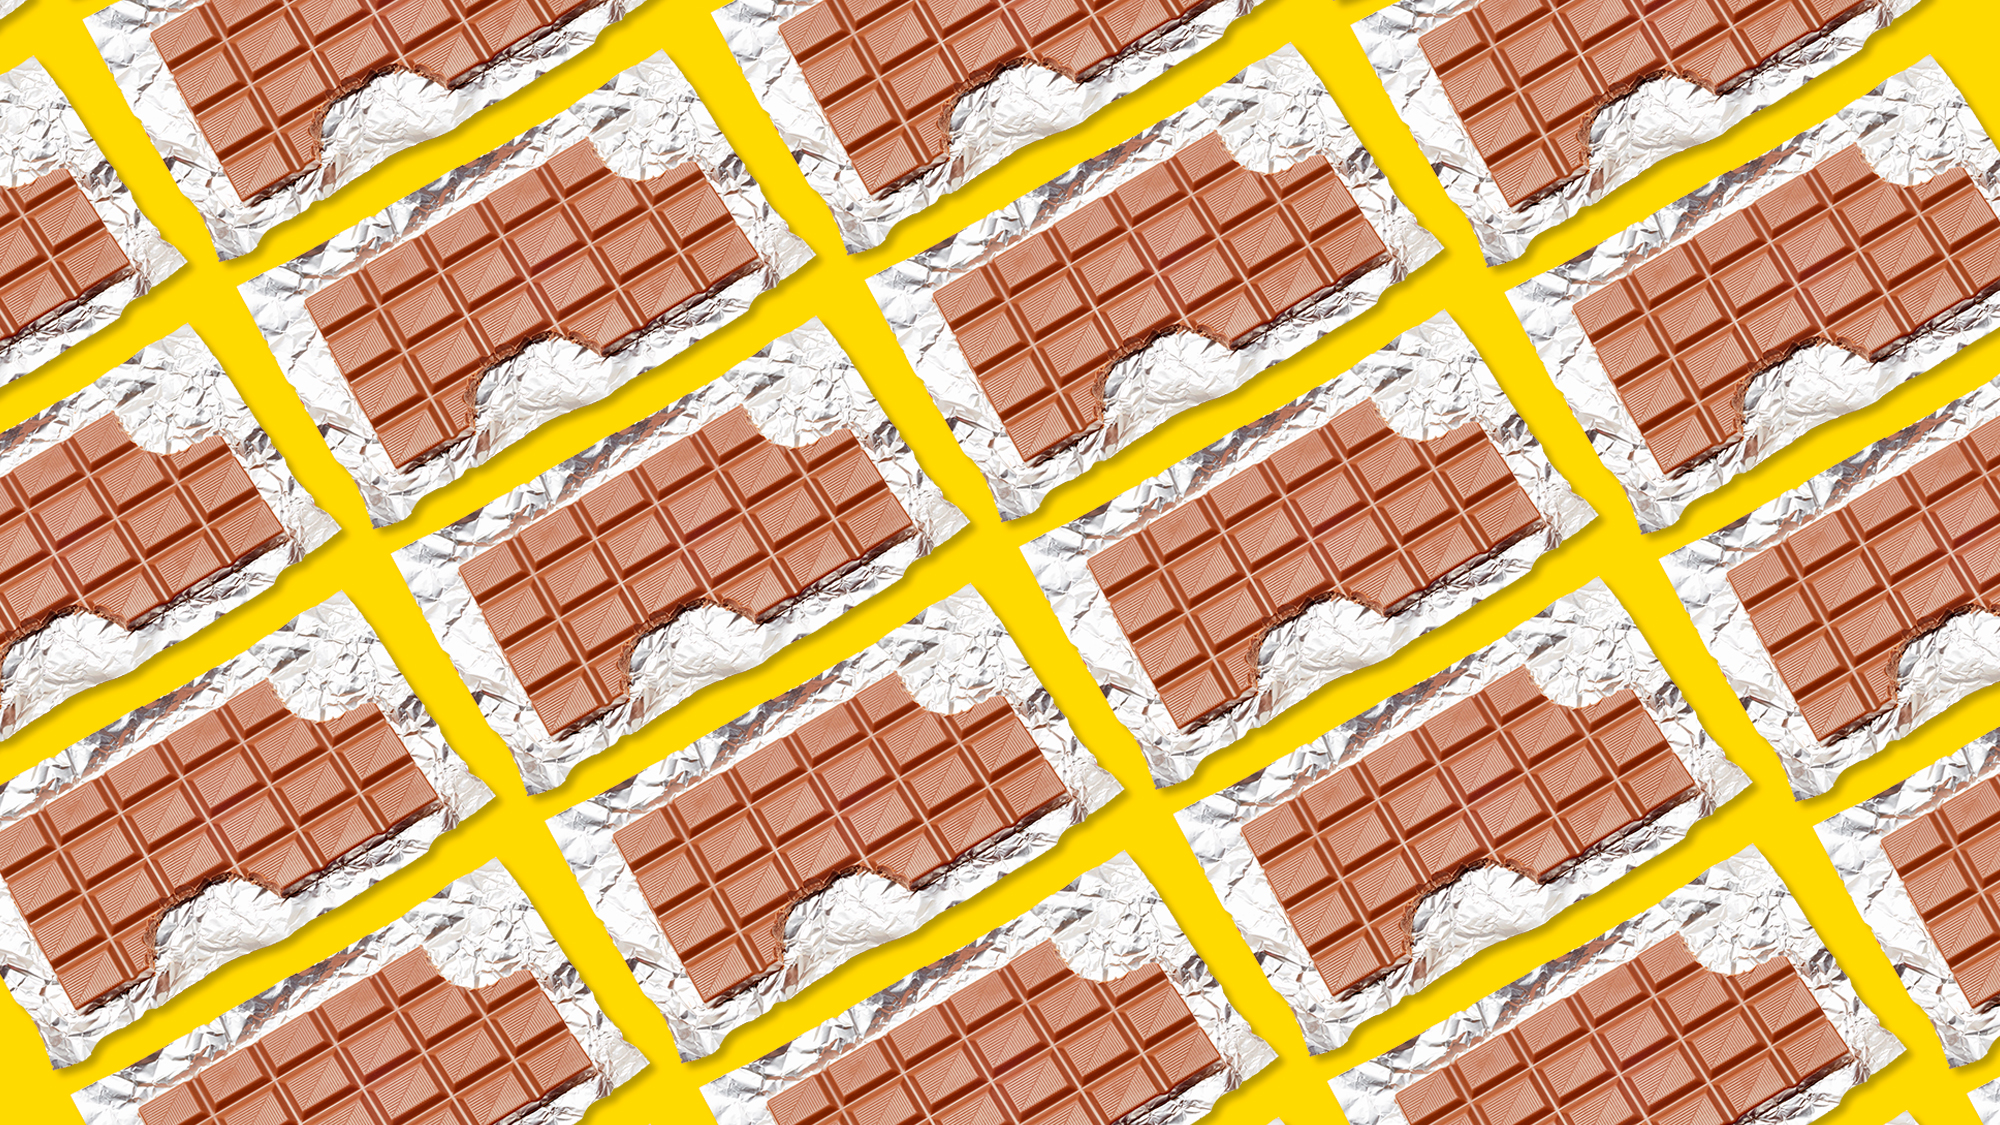 a grid of chocolate bars with the wrappers on a yellow background